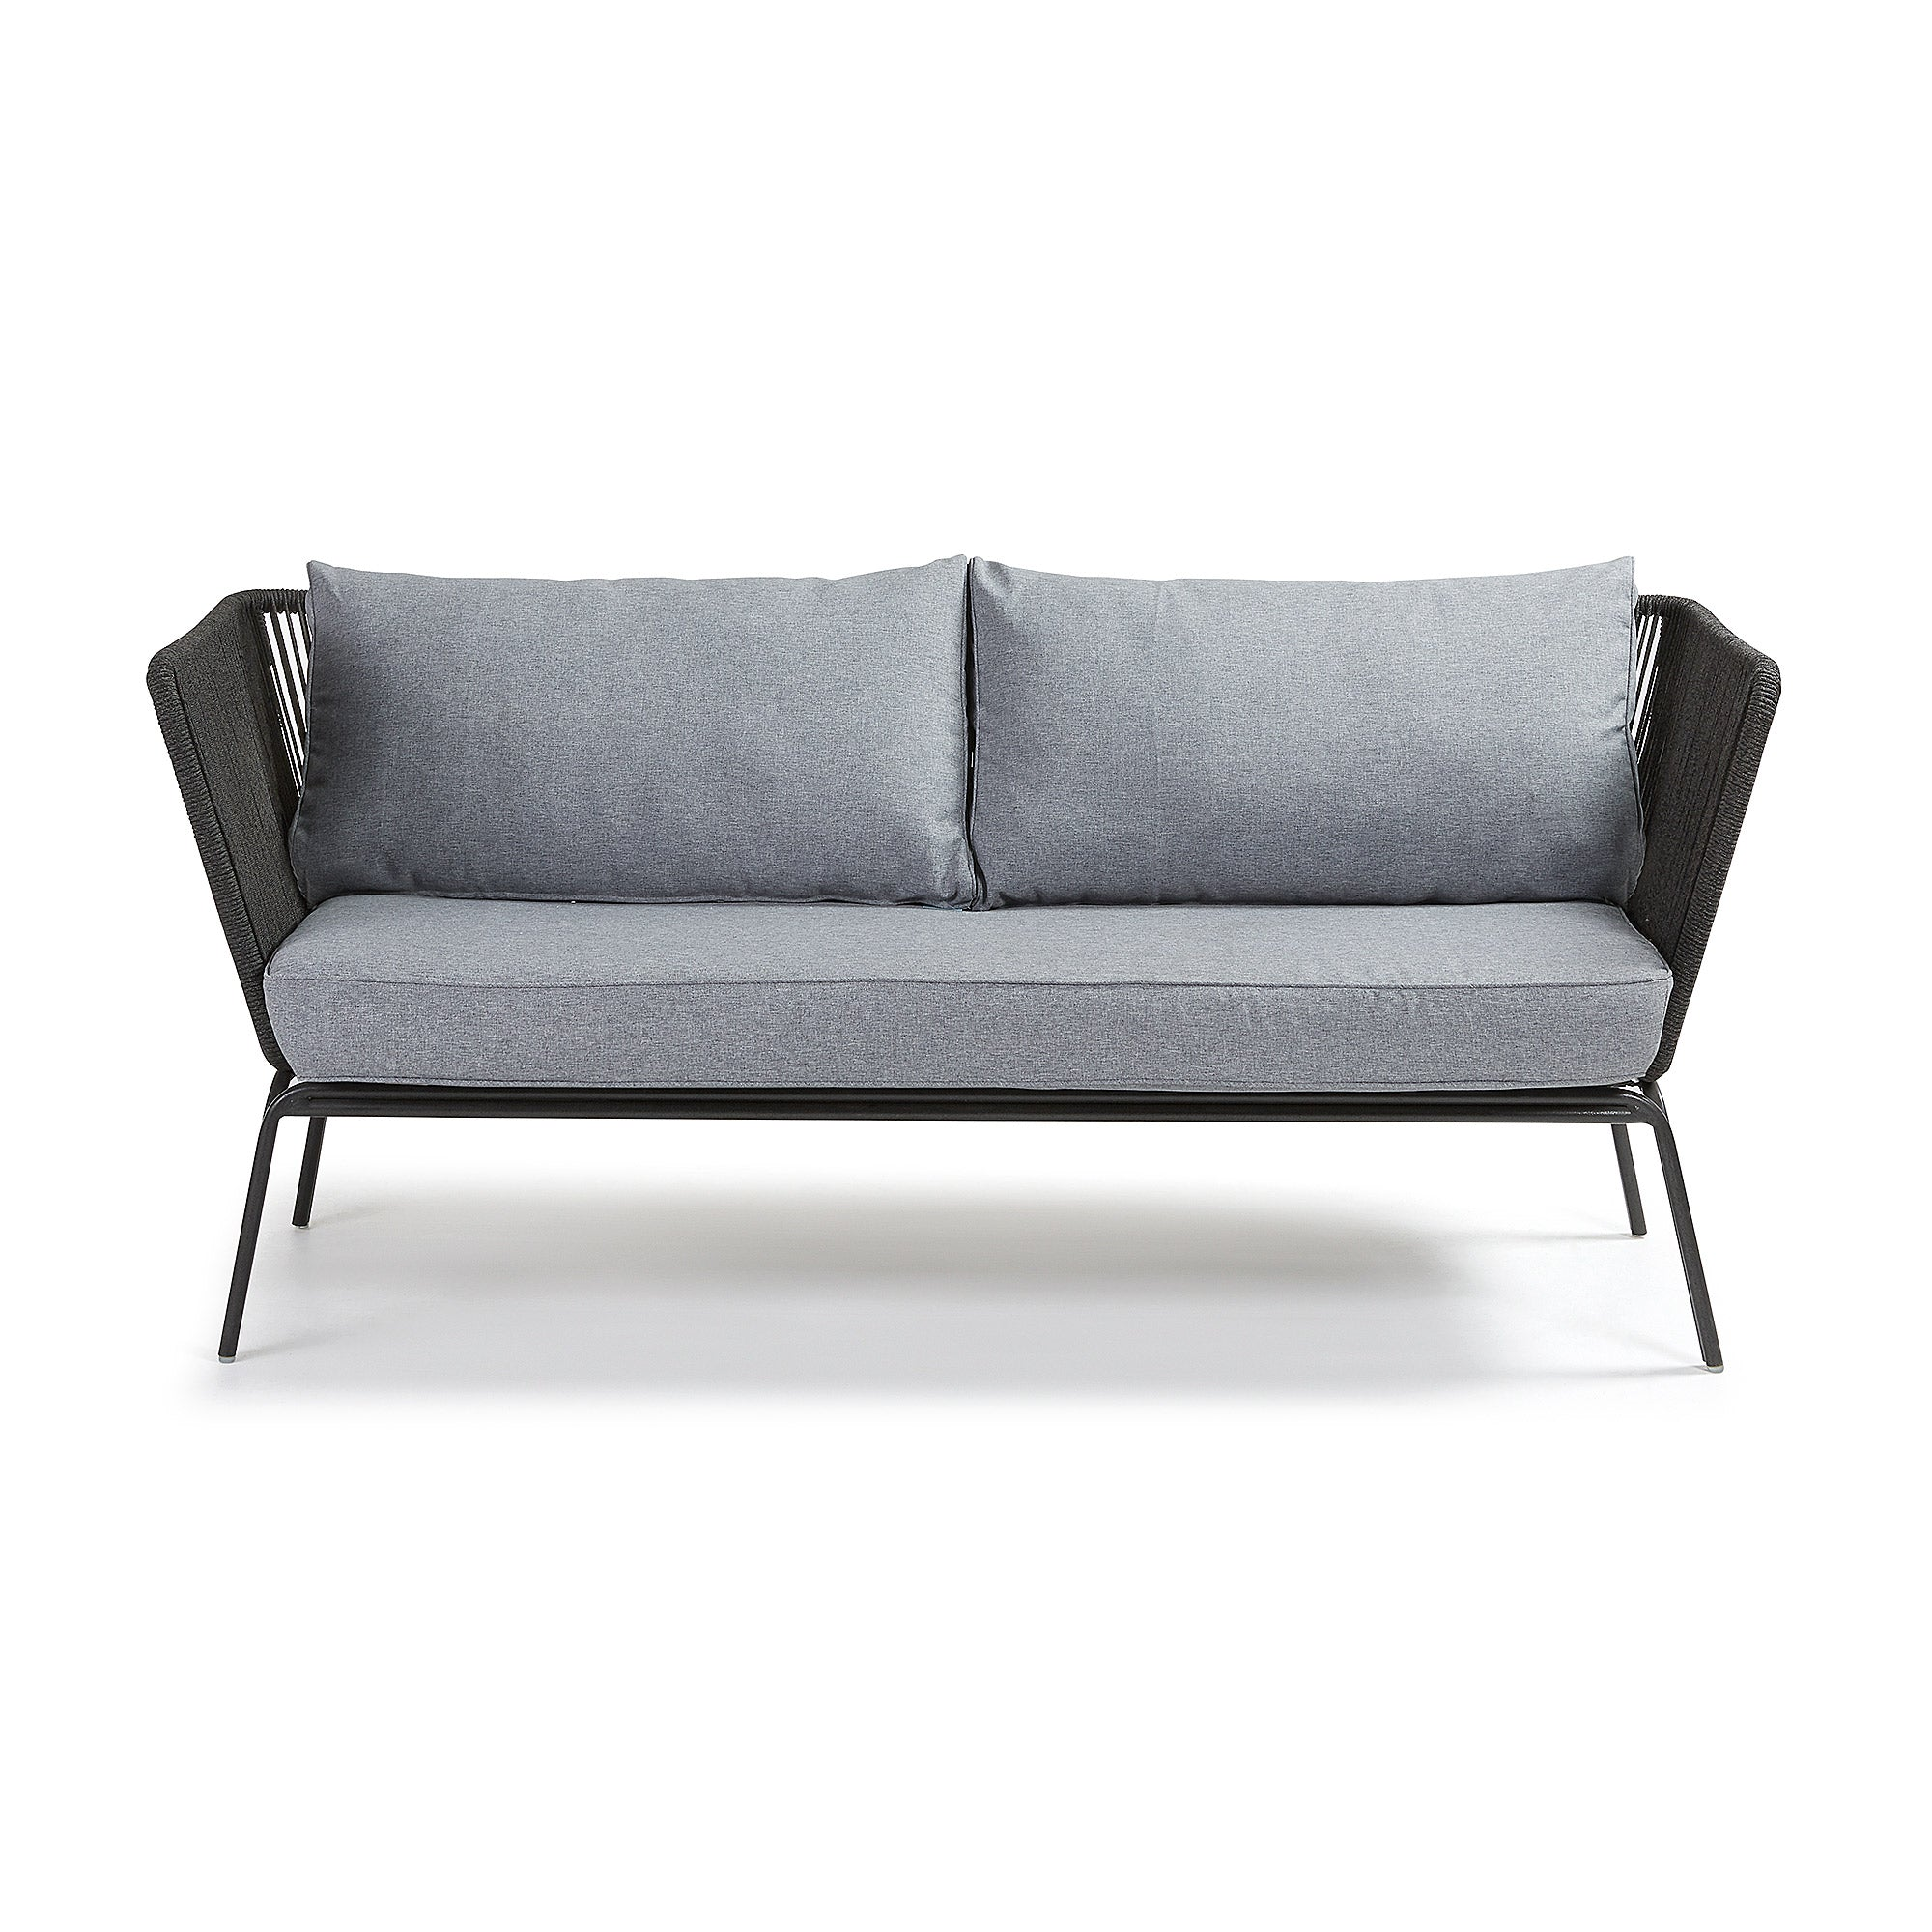 Asterick 3 Seater Patio Sofa